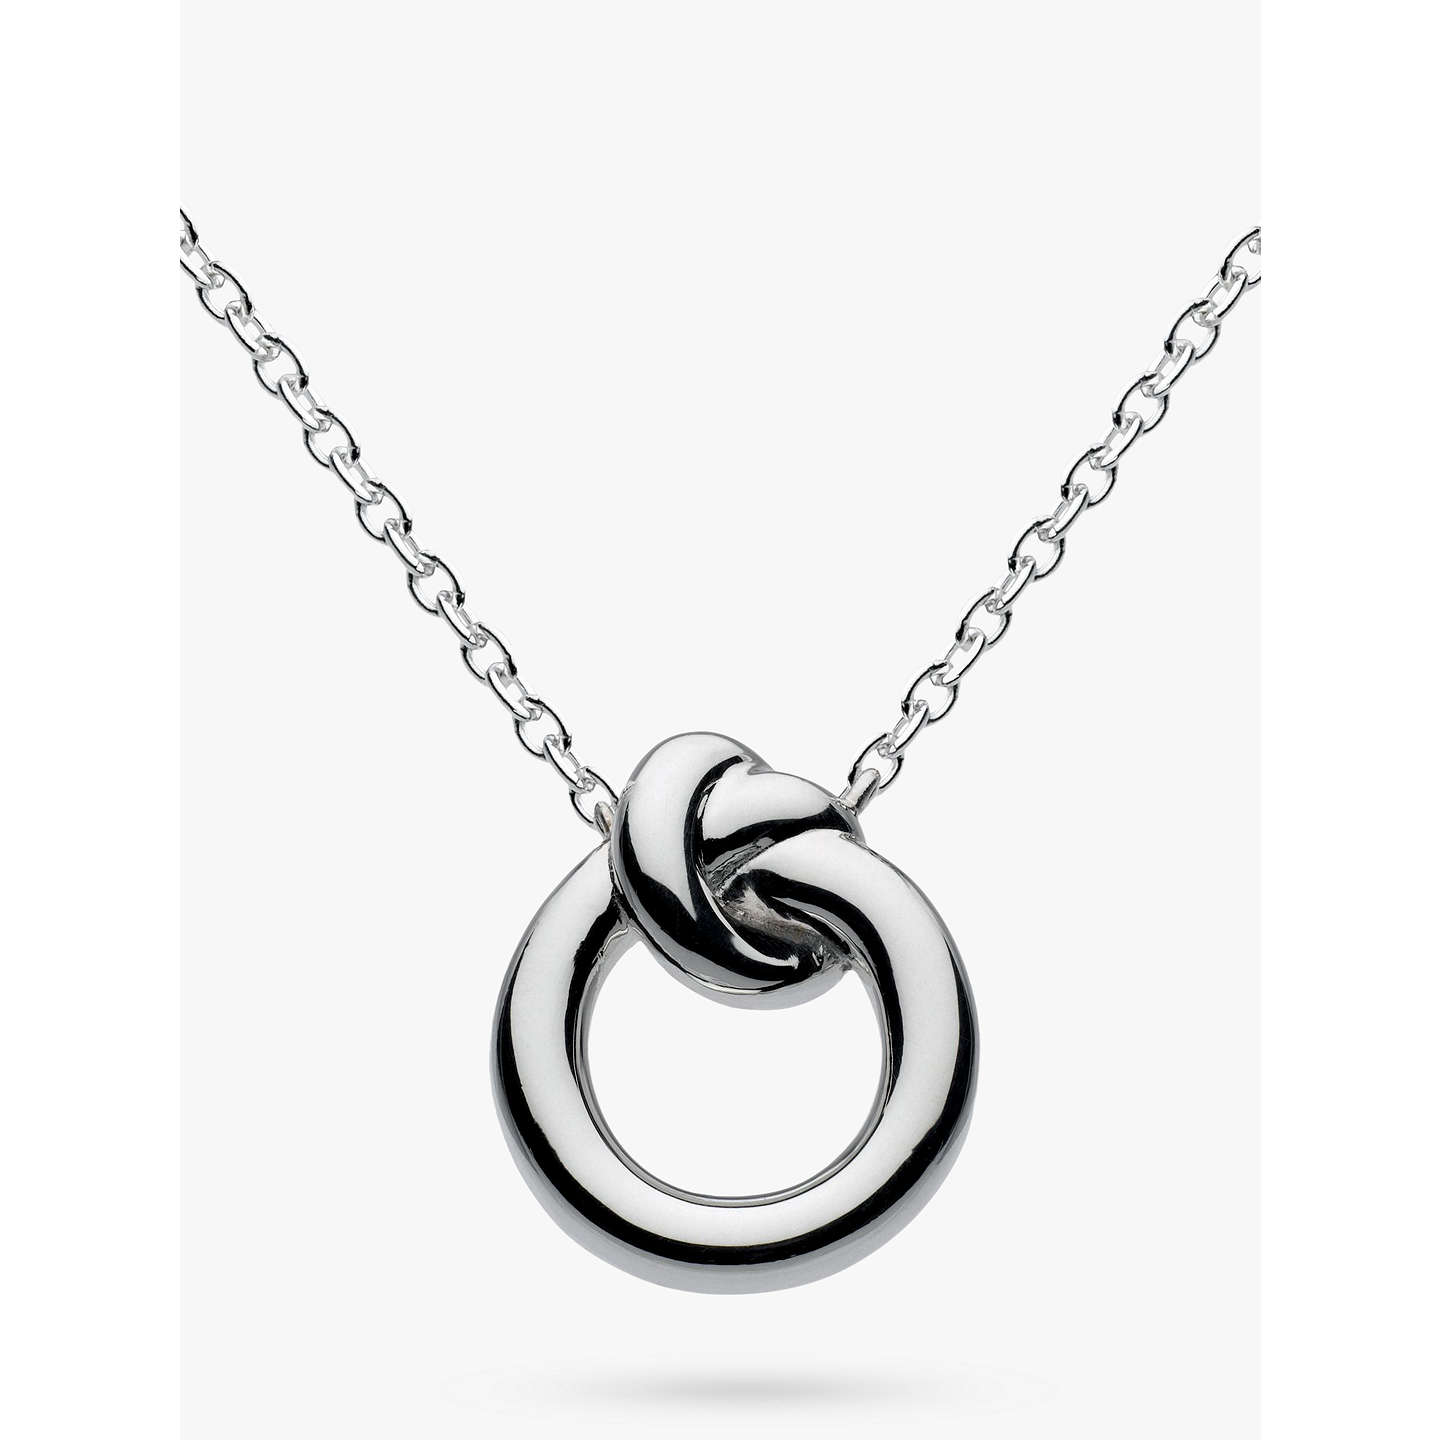 photography jewelry knot stock pendant home item diamond